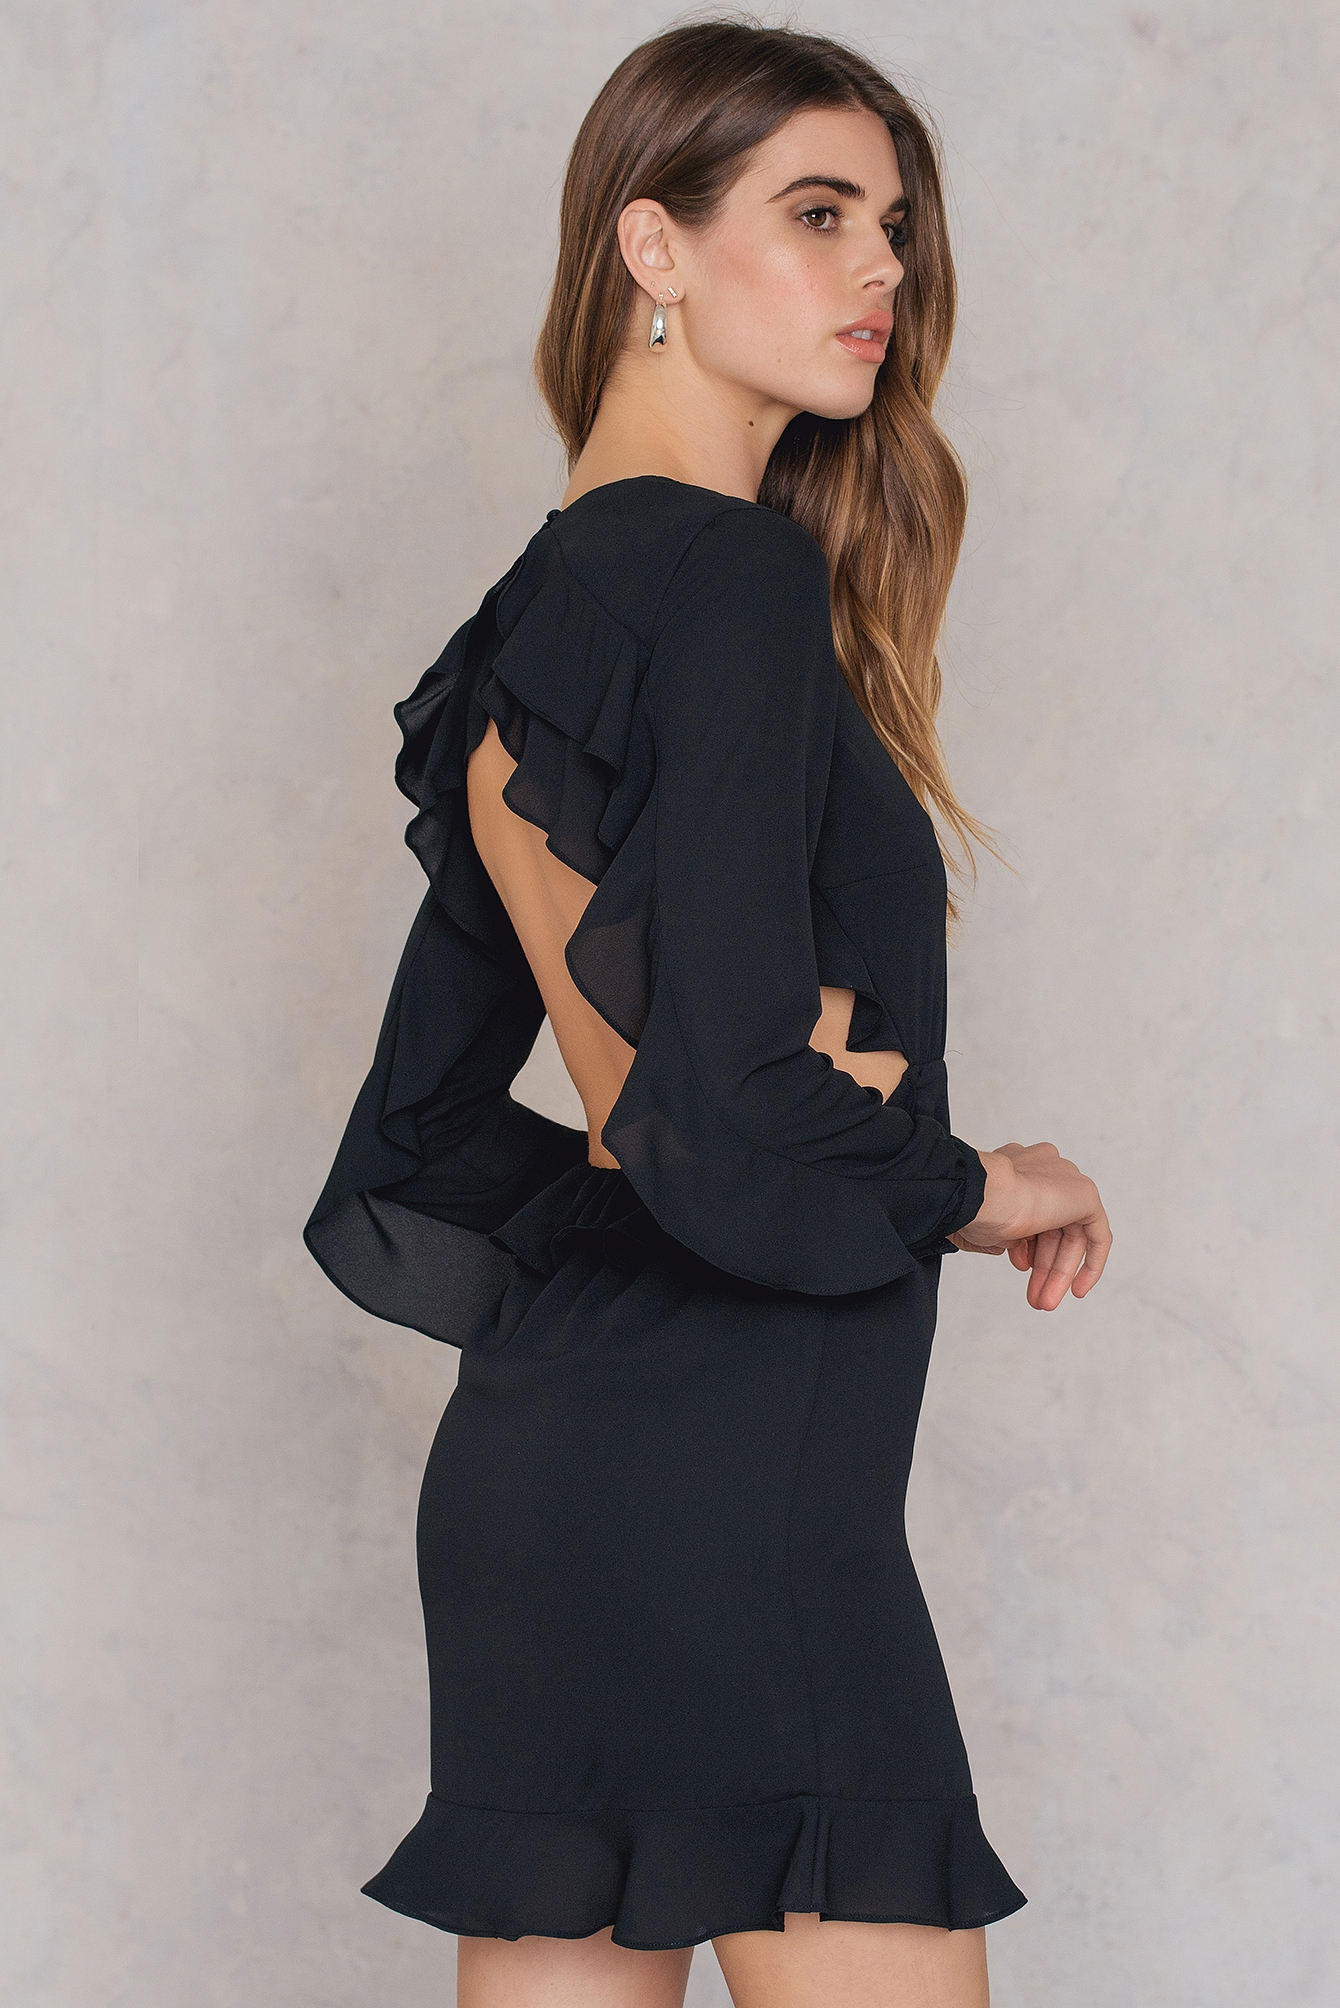 FAYT Zayden Dress Black by FAYT